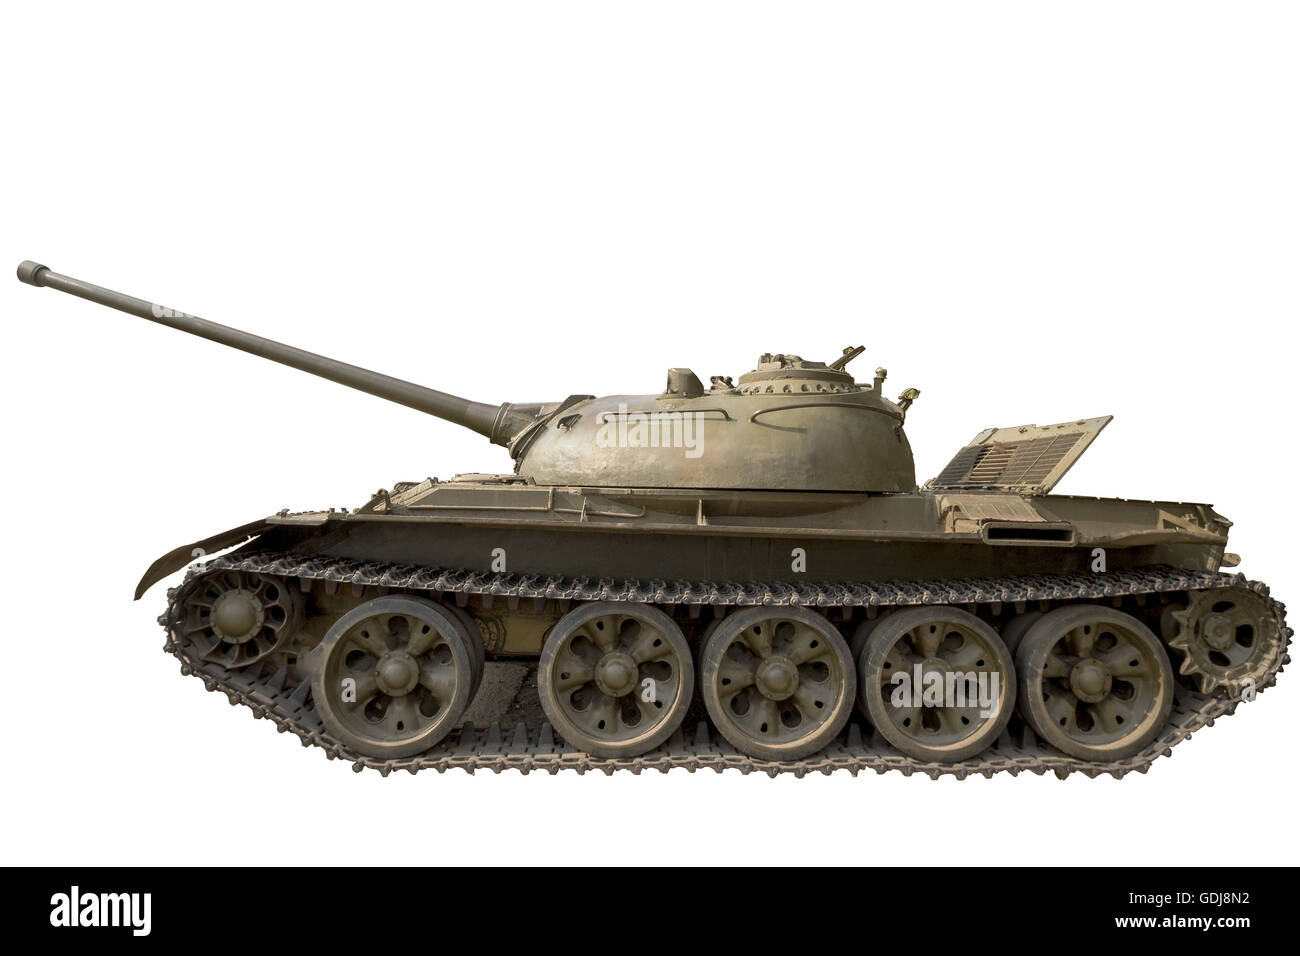 Reinforced self-propelled vehicle on tracks with powerful weapons on a white background - Stock Image